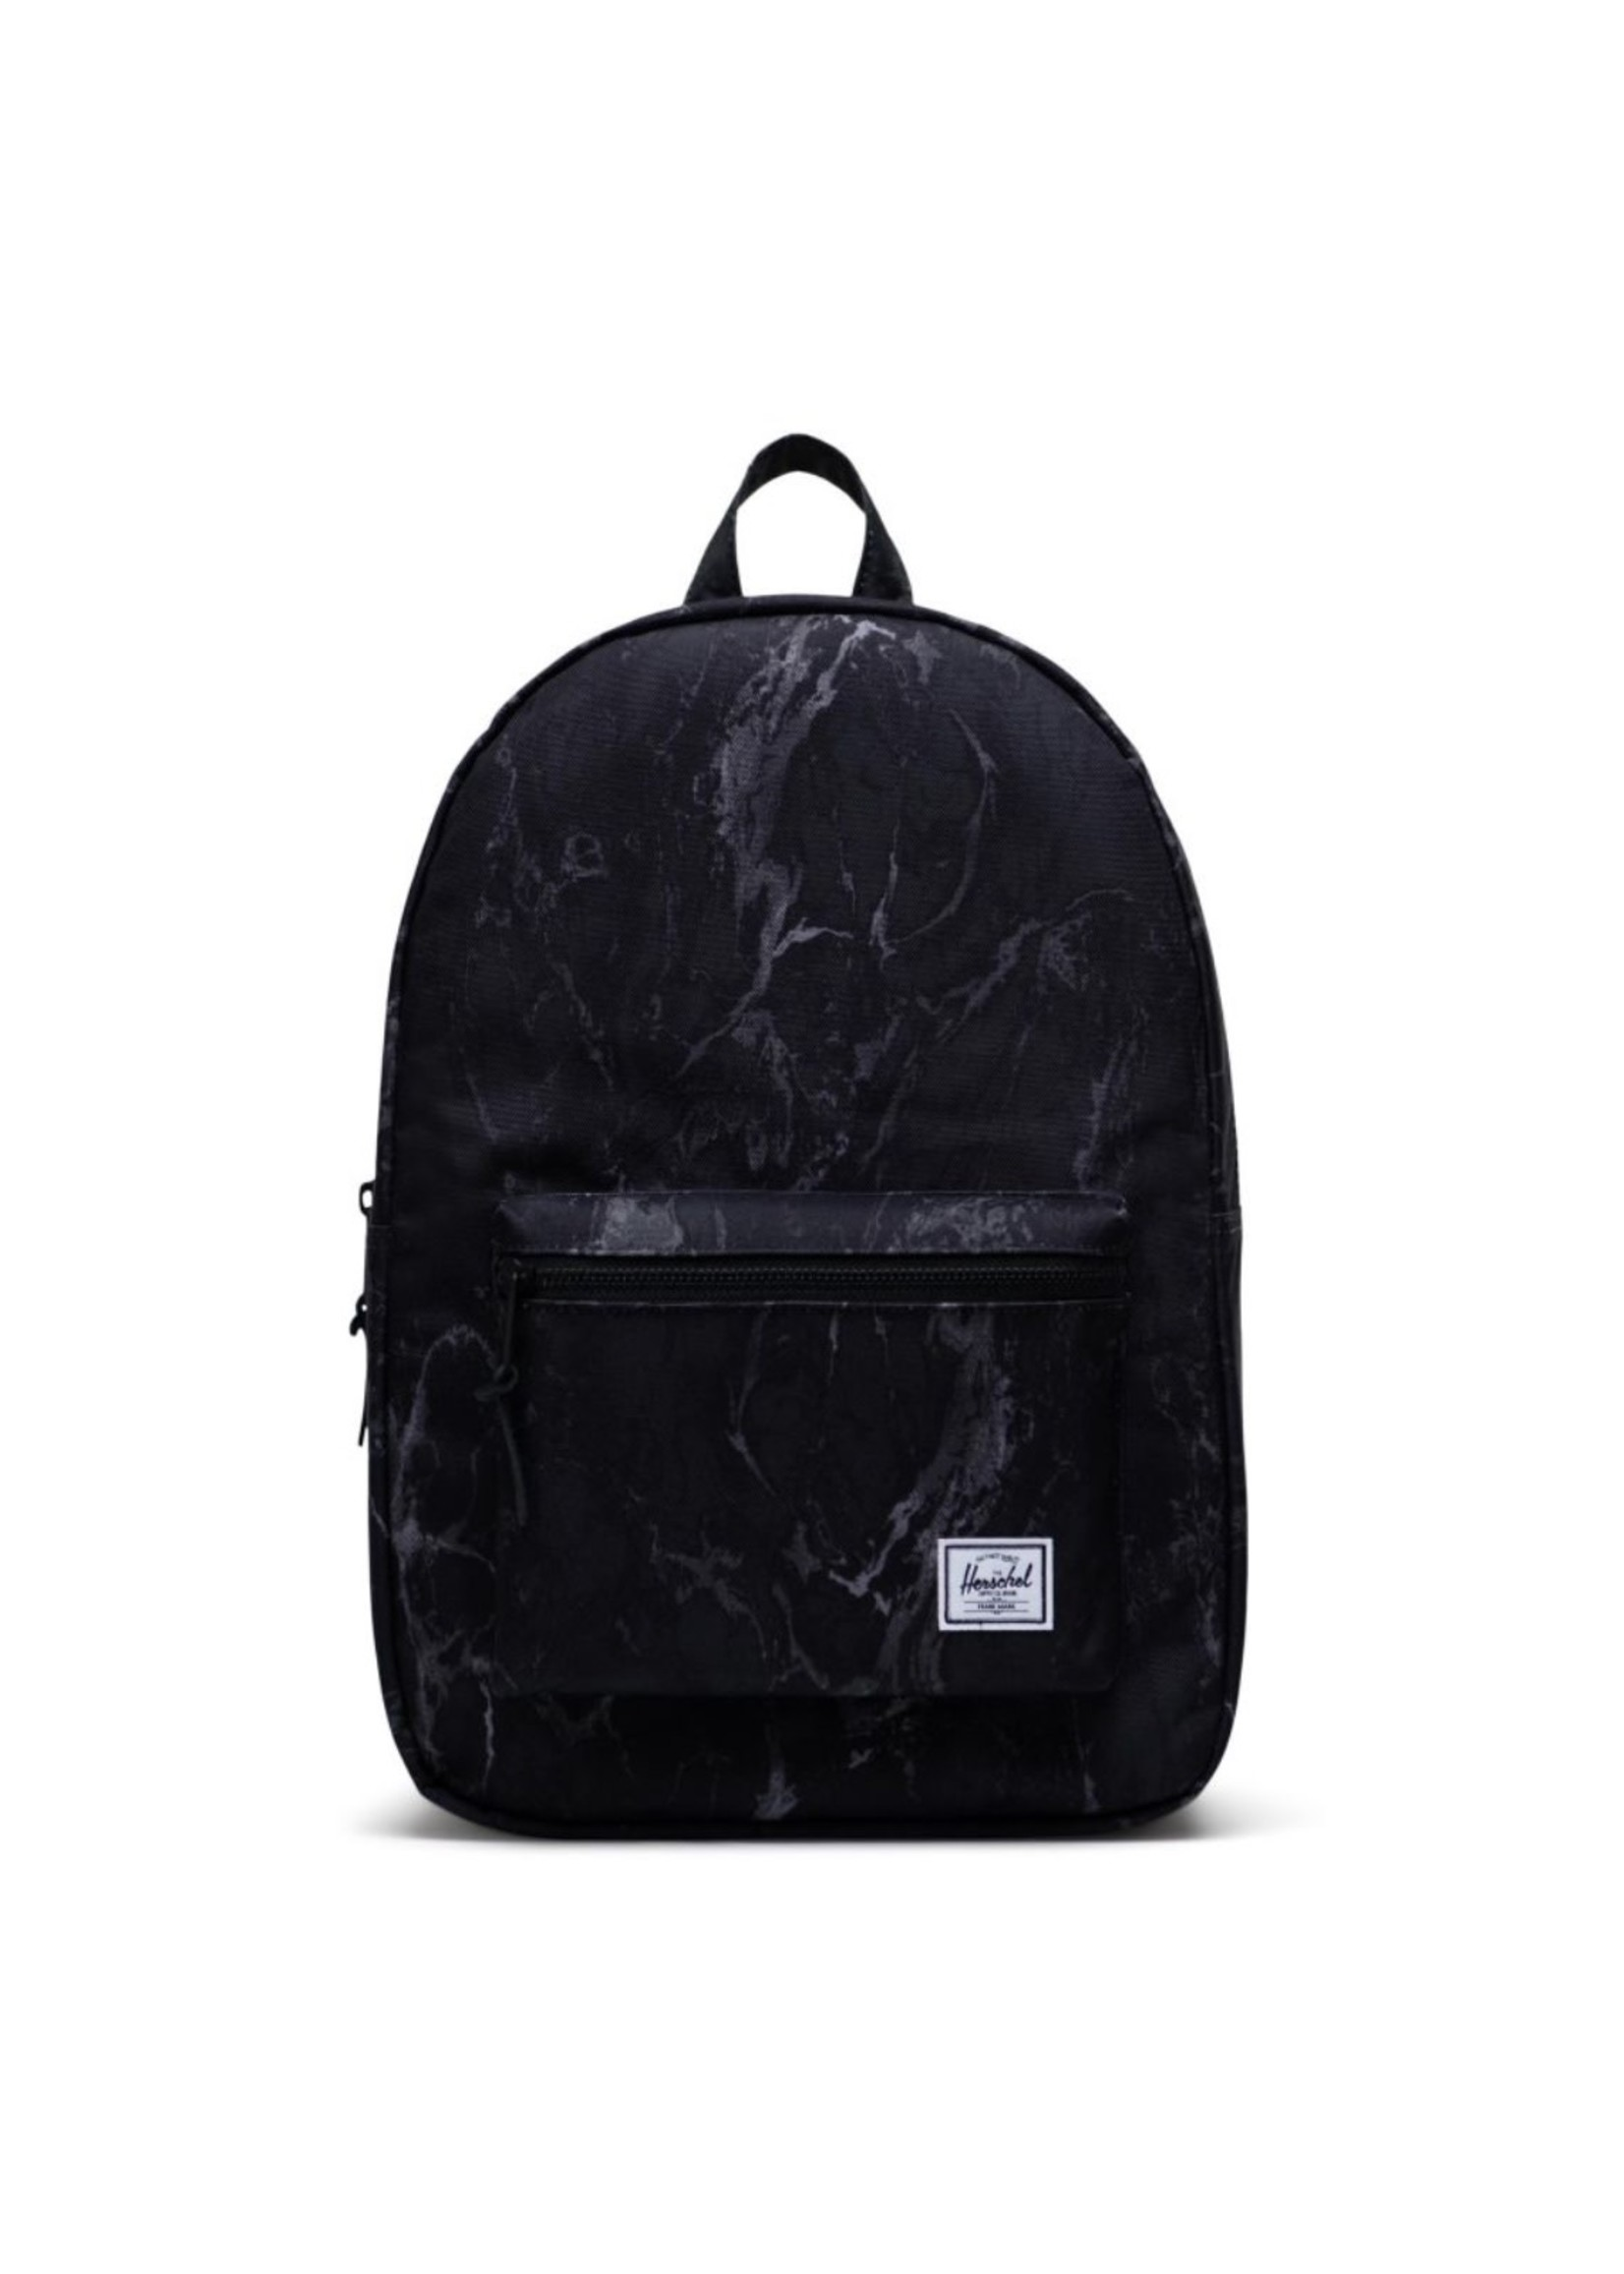 Herschel Supply Co. Settlement Backpack Sprout, Black Marble, 26L